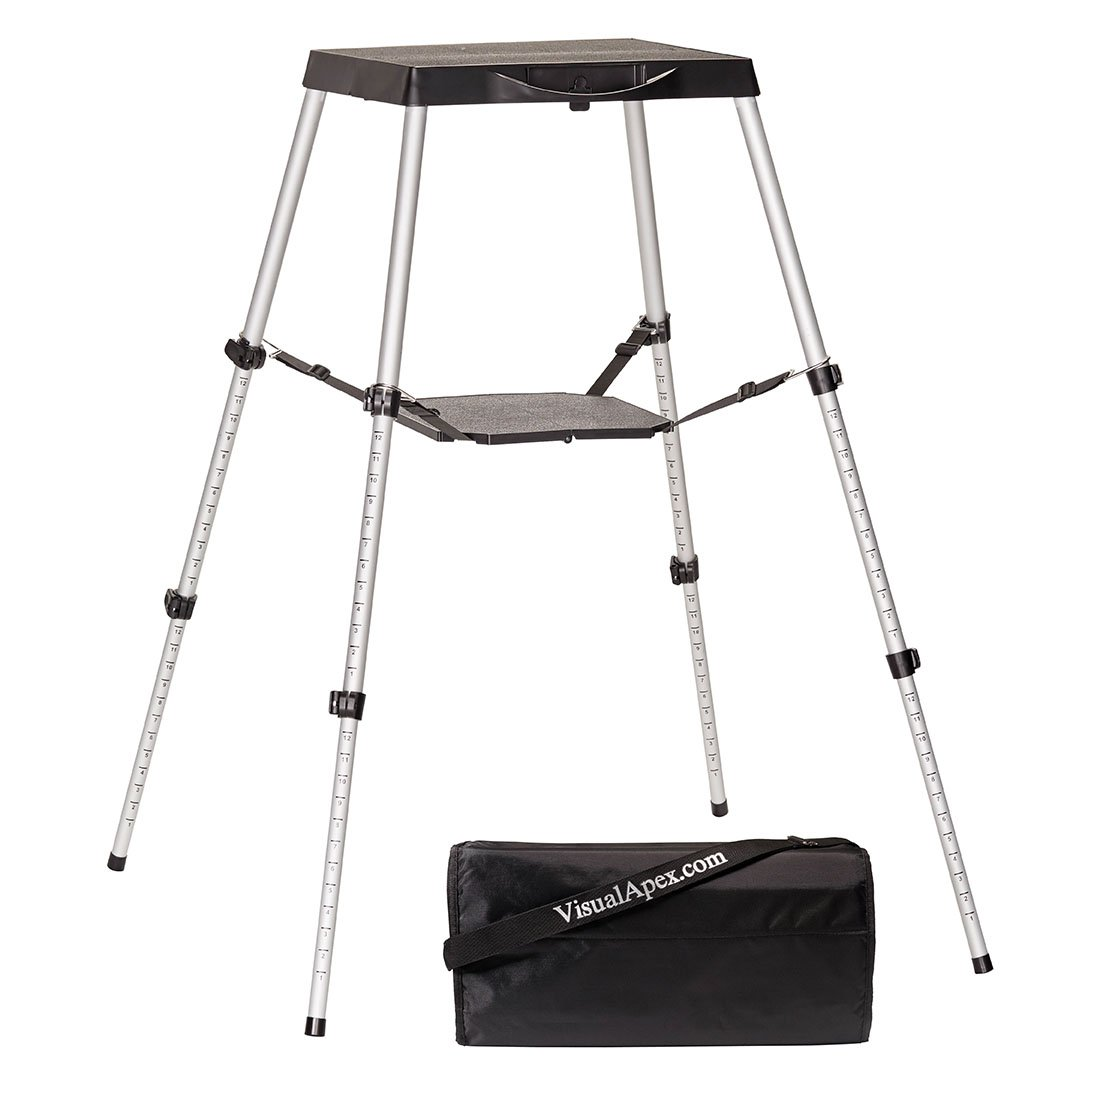 Visual Apex Portable Projector Table Stand with Shelf & Projector Carry Bag, Adjustable 18.5'' to 44'' high by Visual Apex